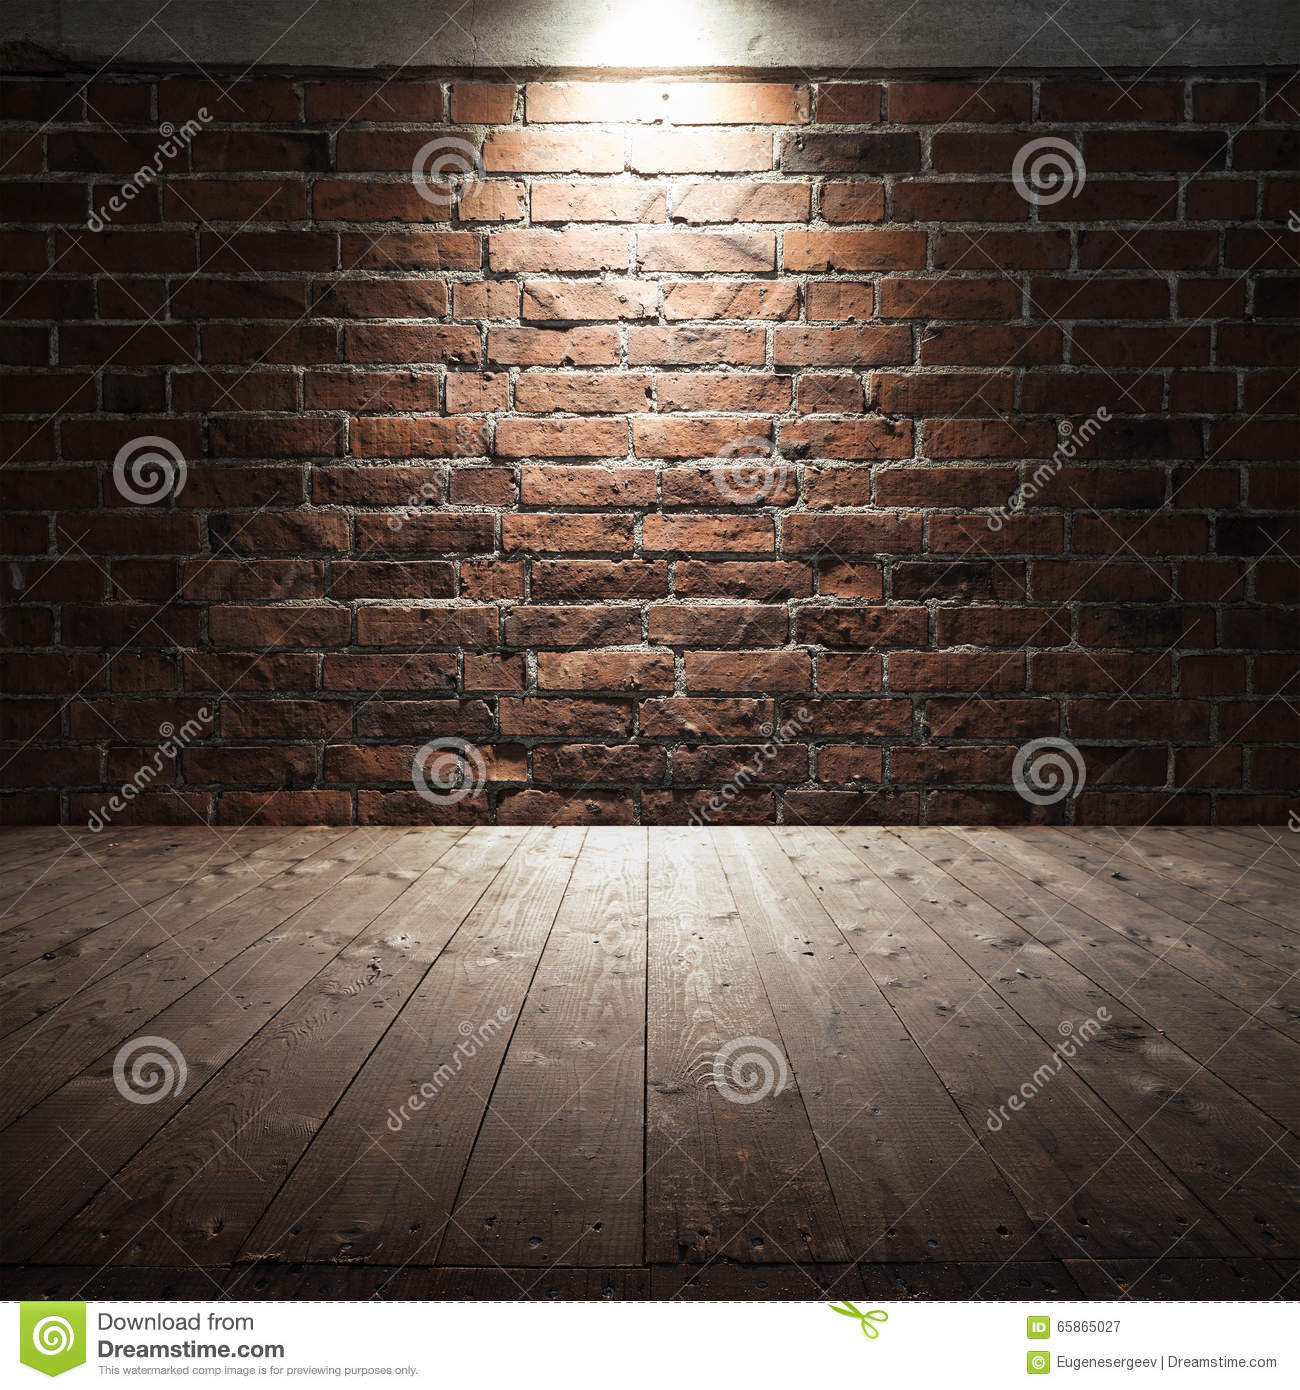 Wooden Floor And Red Brick Wall With Spot Light Stock